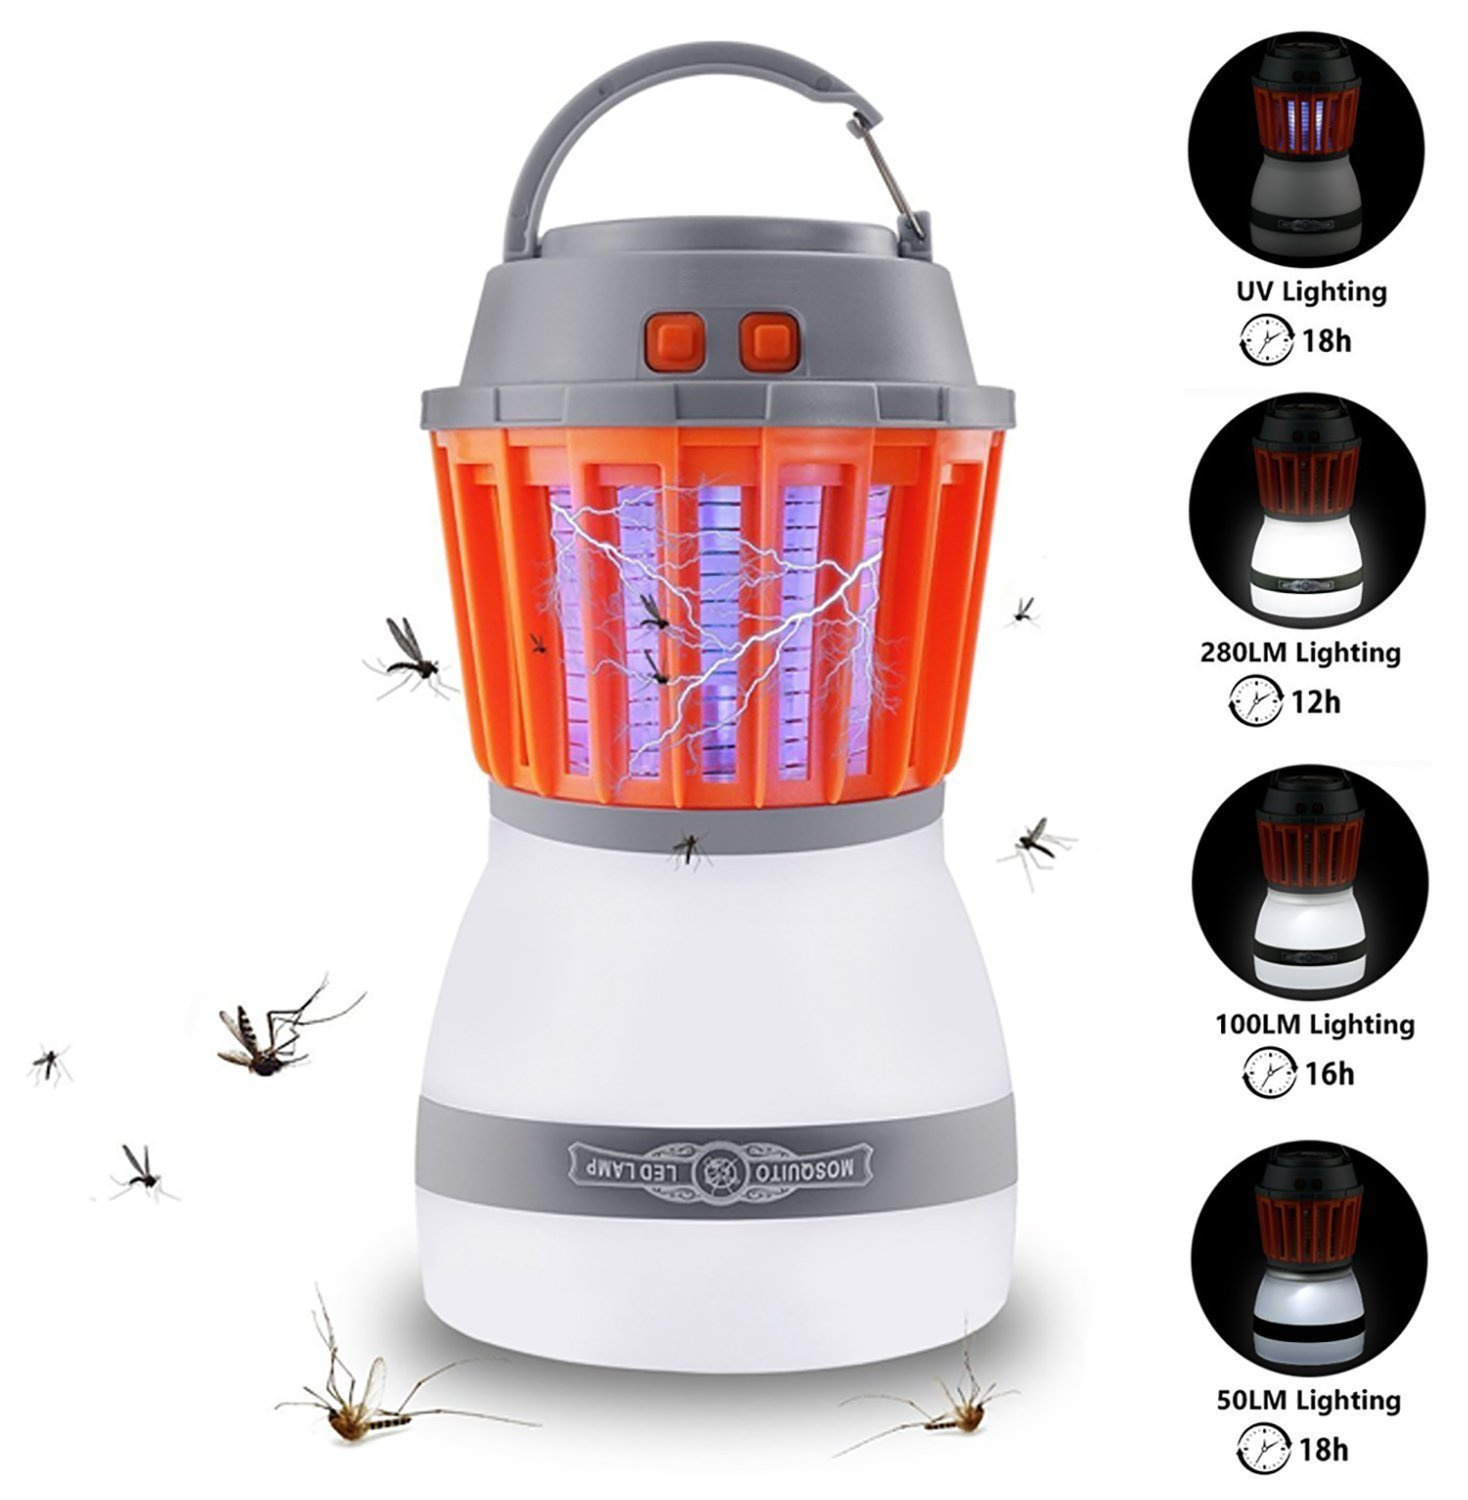 Fellee Bug Zapper, 2-in-1 Mosquito Killer & Camping Lamp Natural Mosquito Killer Lamp Travel Camping Lantern Pest Control USB IP67 Waterproof Insect Repeller for Indoor &Outdoor by Fellee (Image #4)